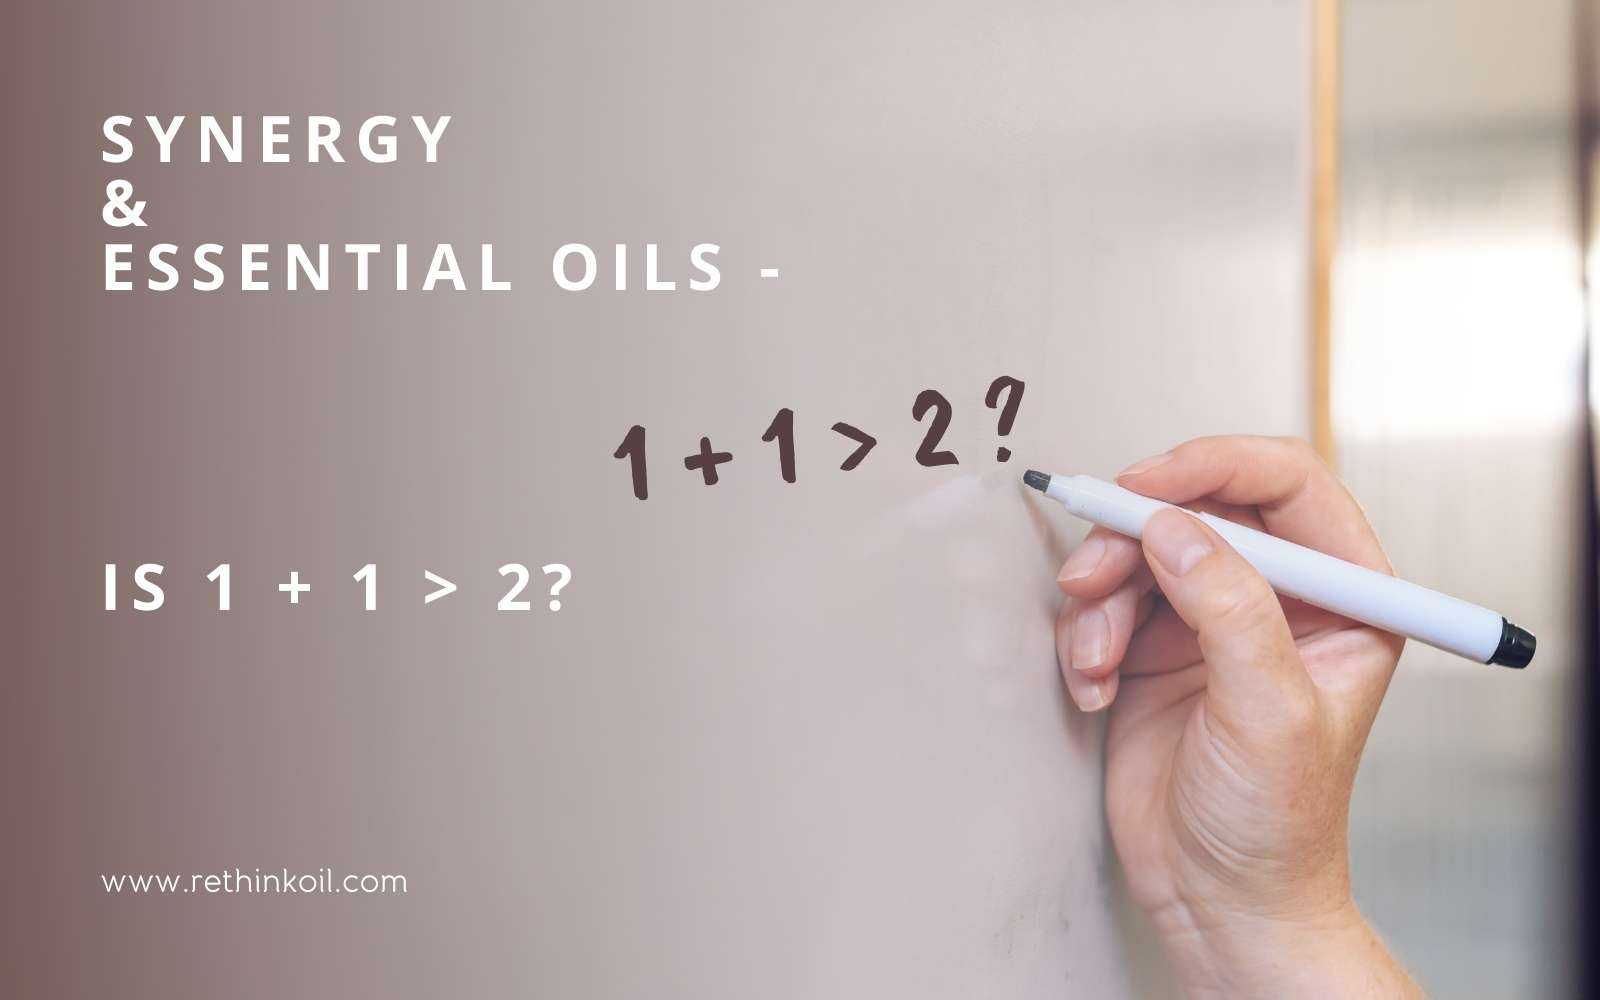 ReThinkOil Blog Synergy & Essential Oils